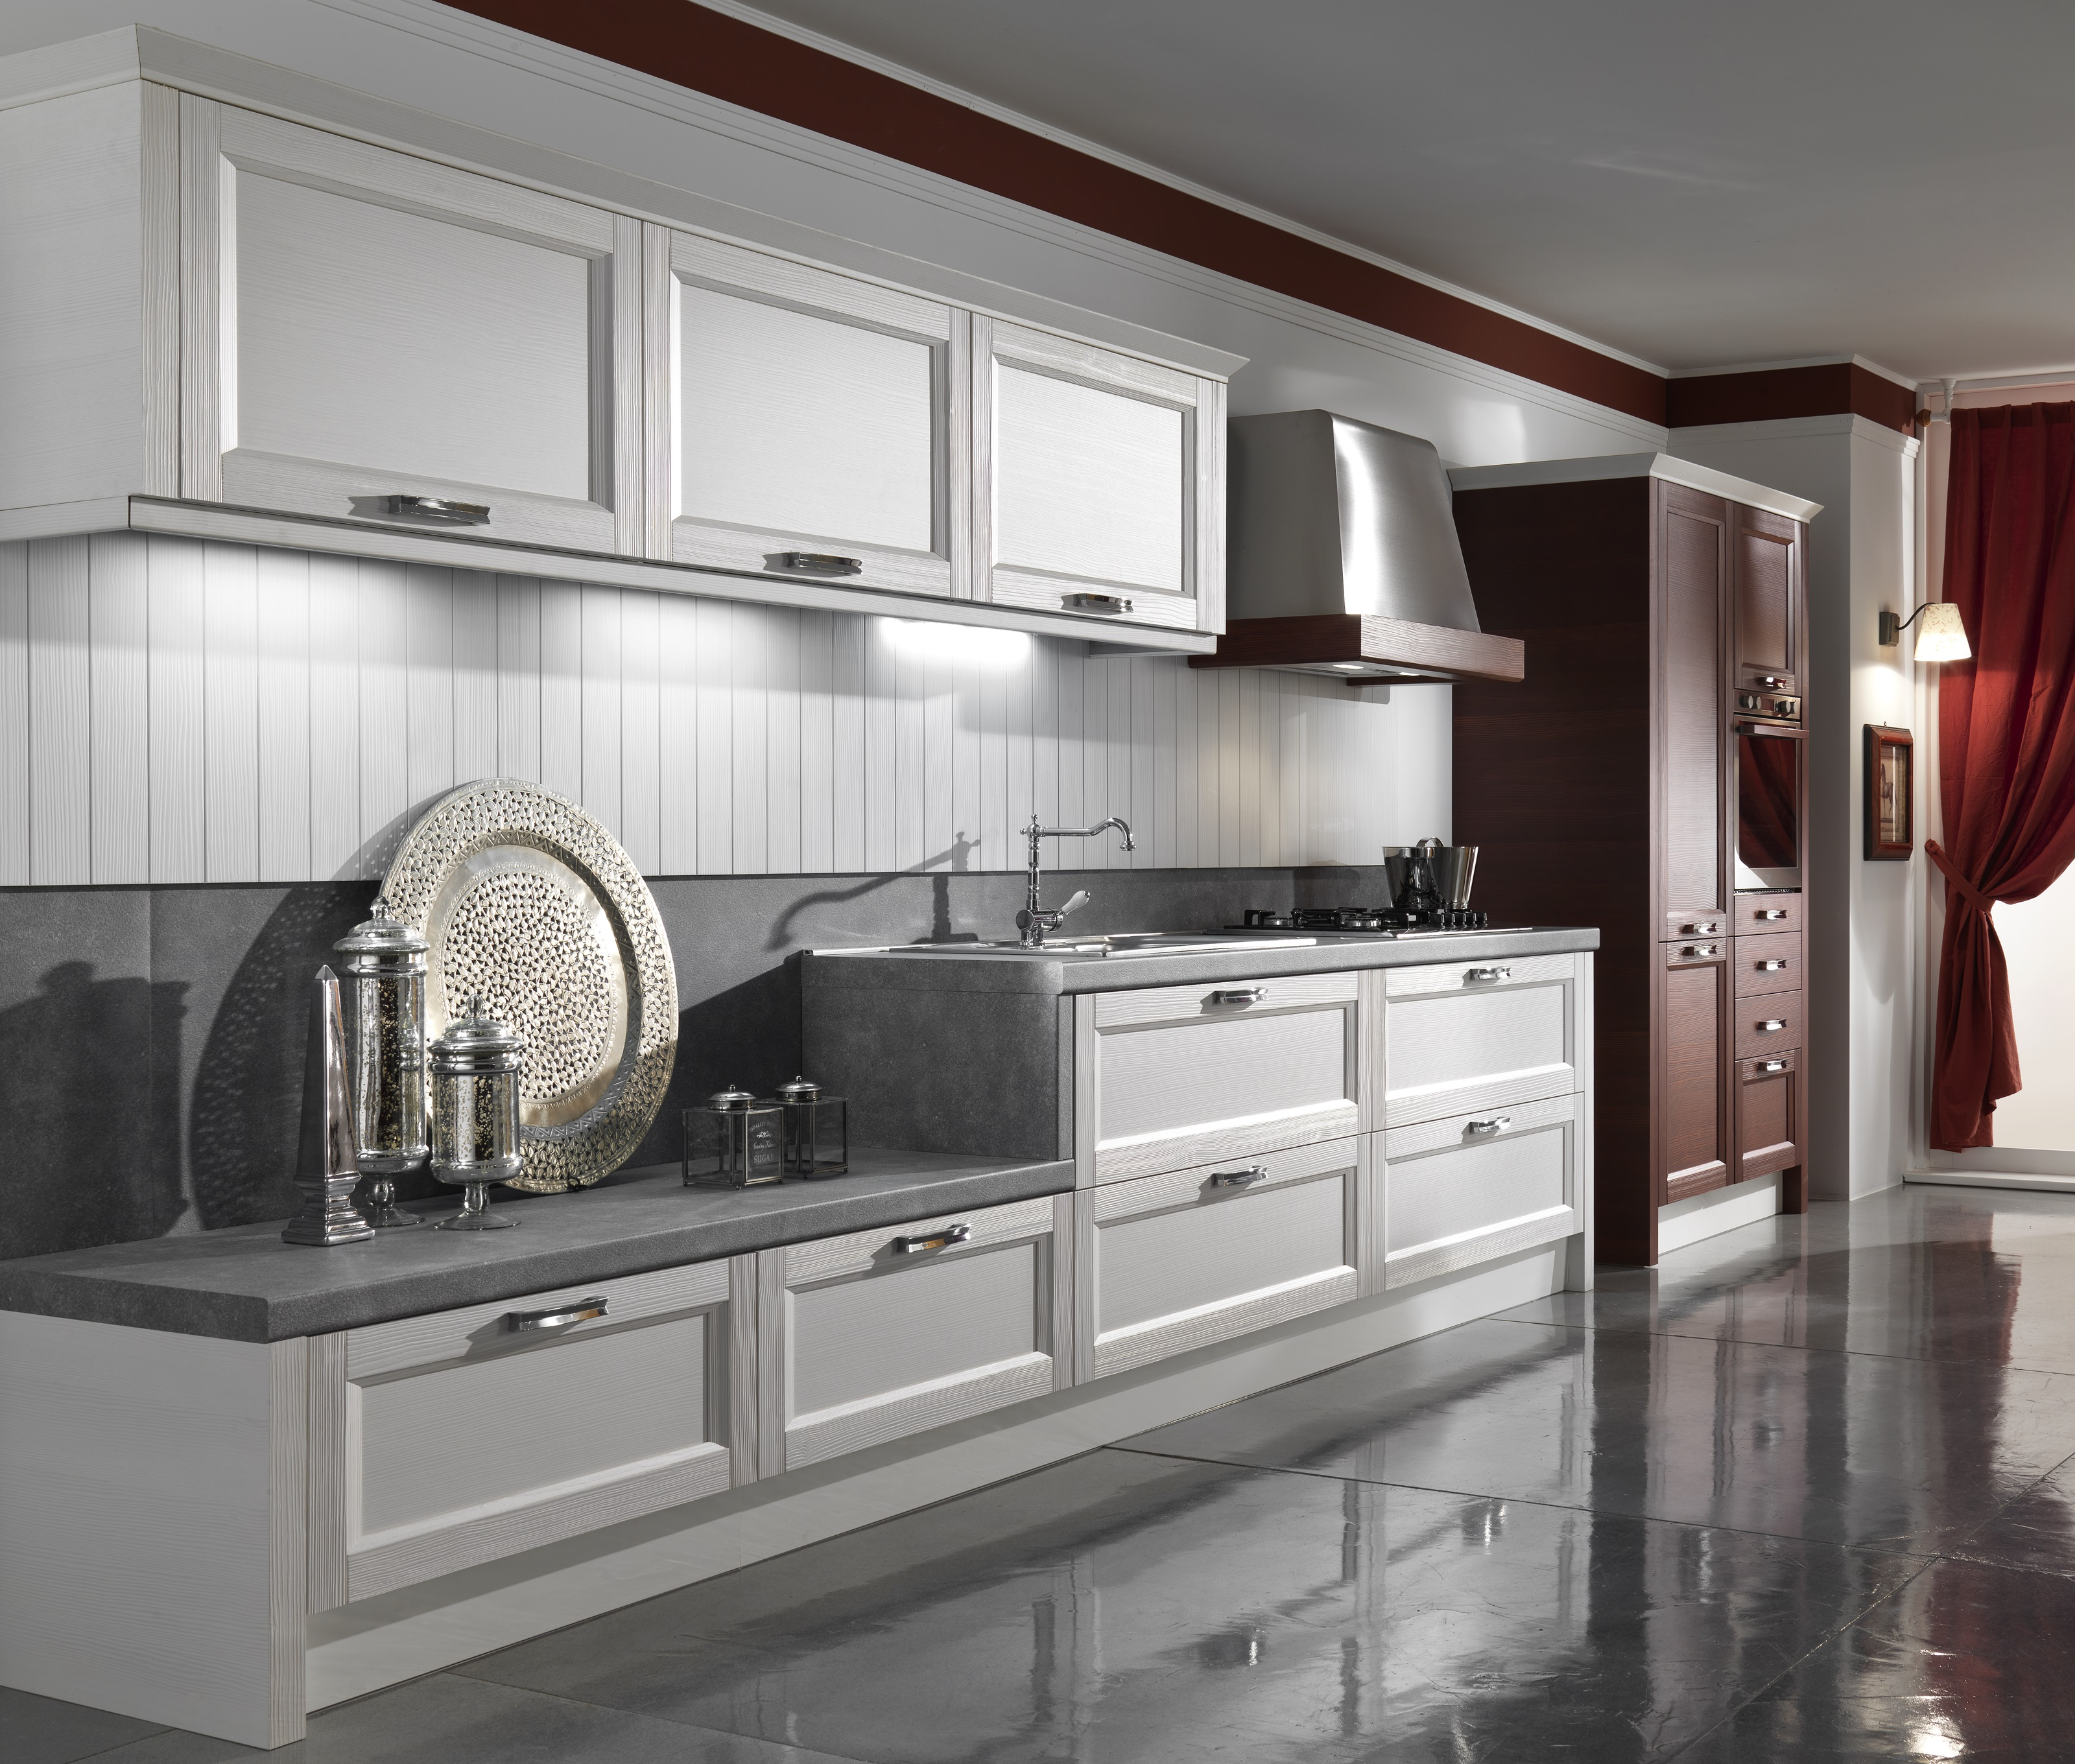 Kitchen Craft Cabinets Quality: Italcraft Kitchens